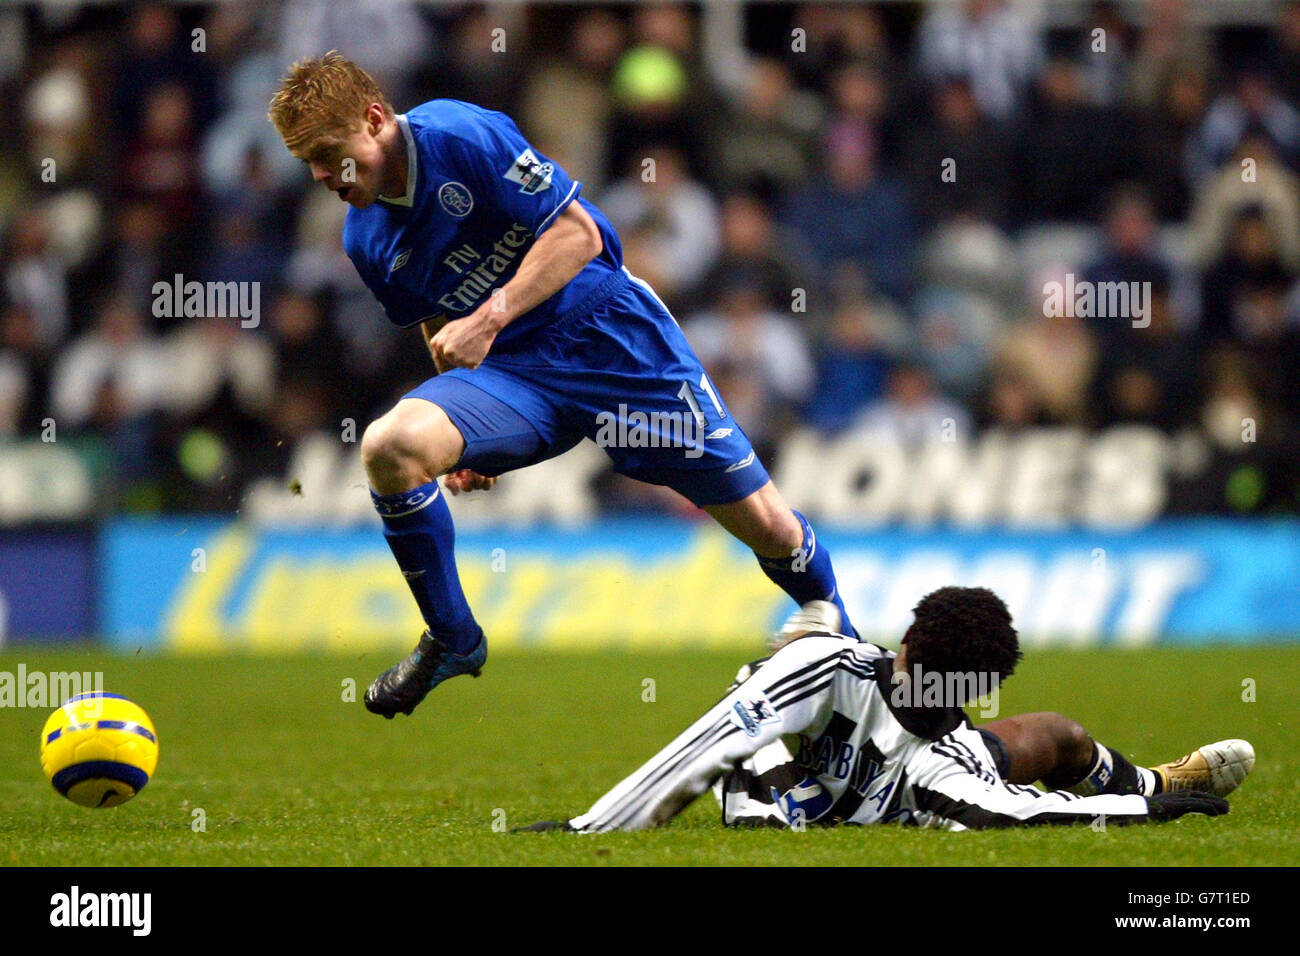 Soccer - FA Cup - Fifth Round - Newcastle United v Chelsea - St James' Park - Stock Image